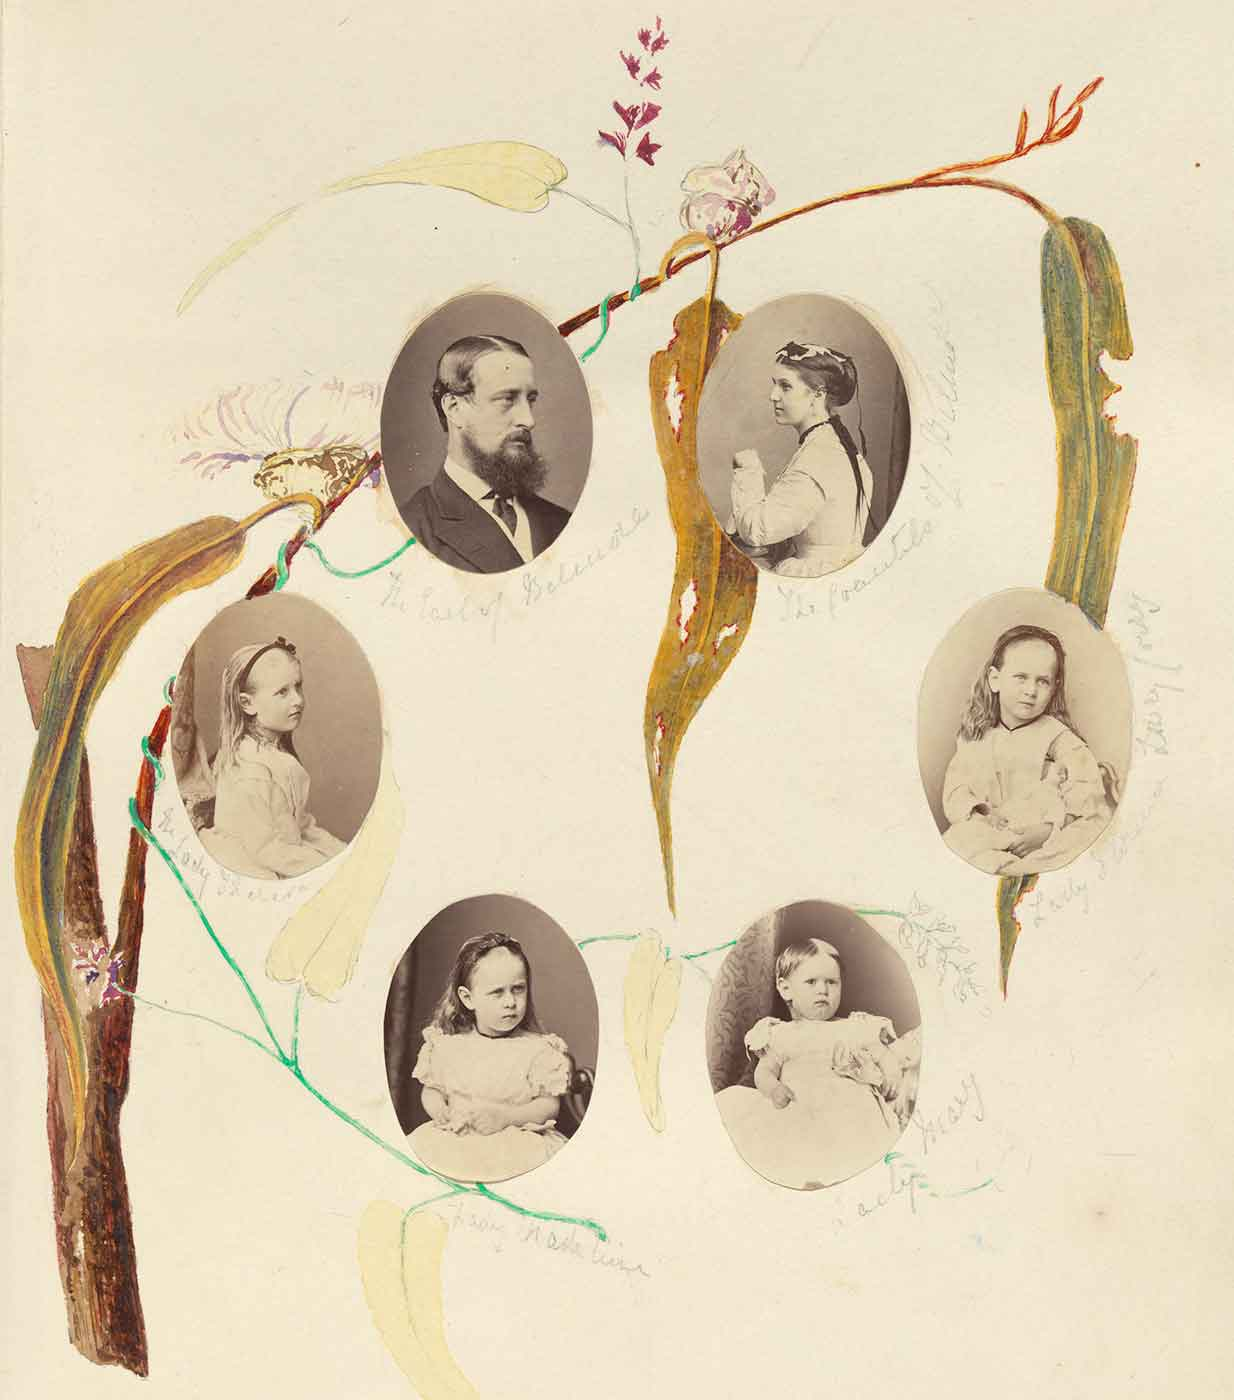 Family tree featuring photos of six family members and native plant illustrations.